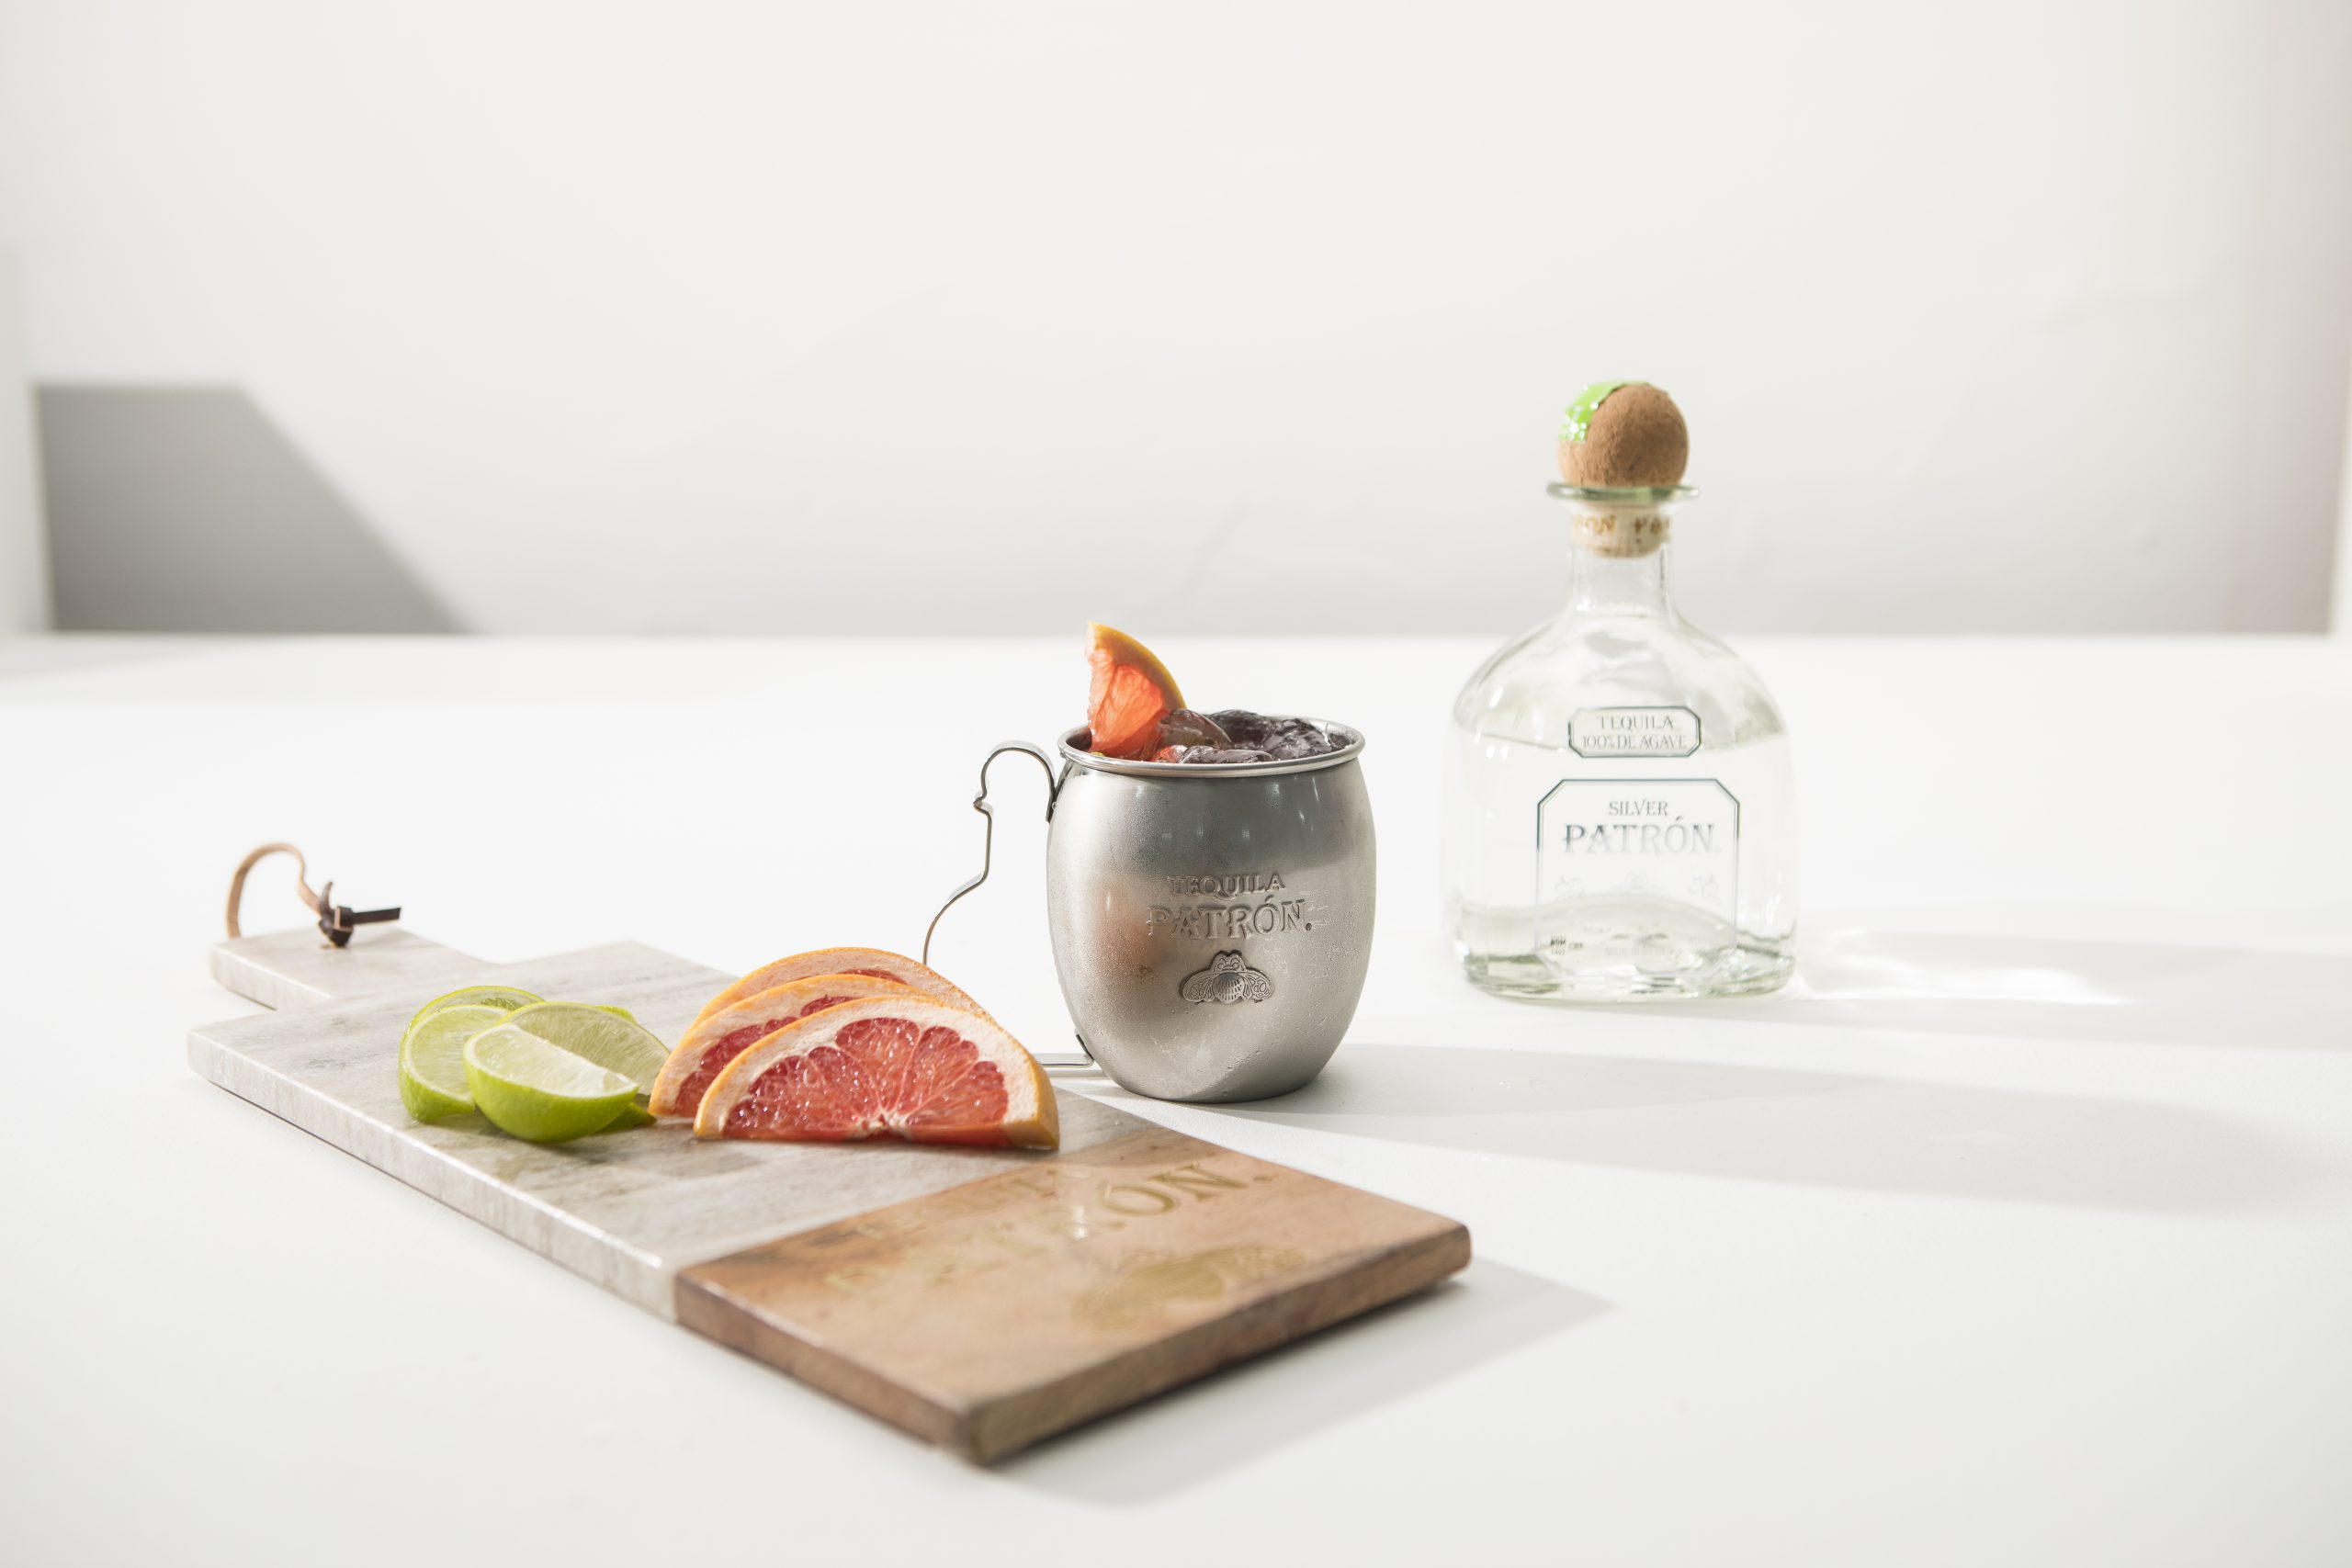 Shake it: de lekkere cocktail 'Patrón Paloma' op basis van pompelmoes